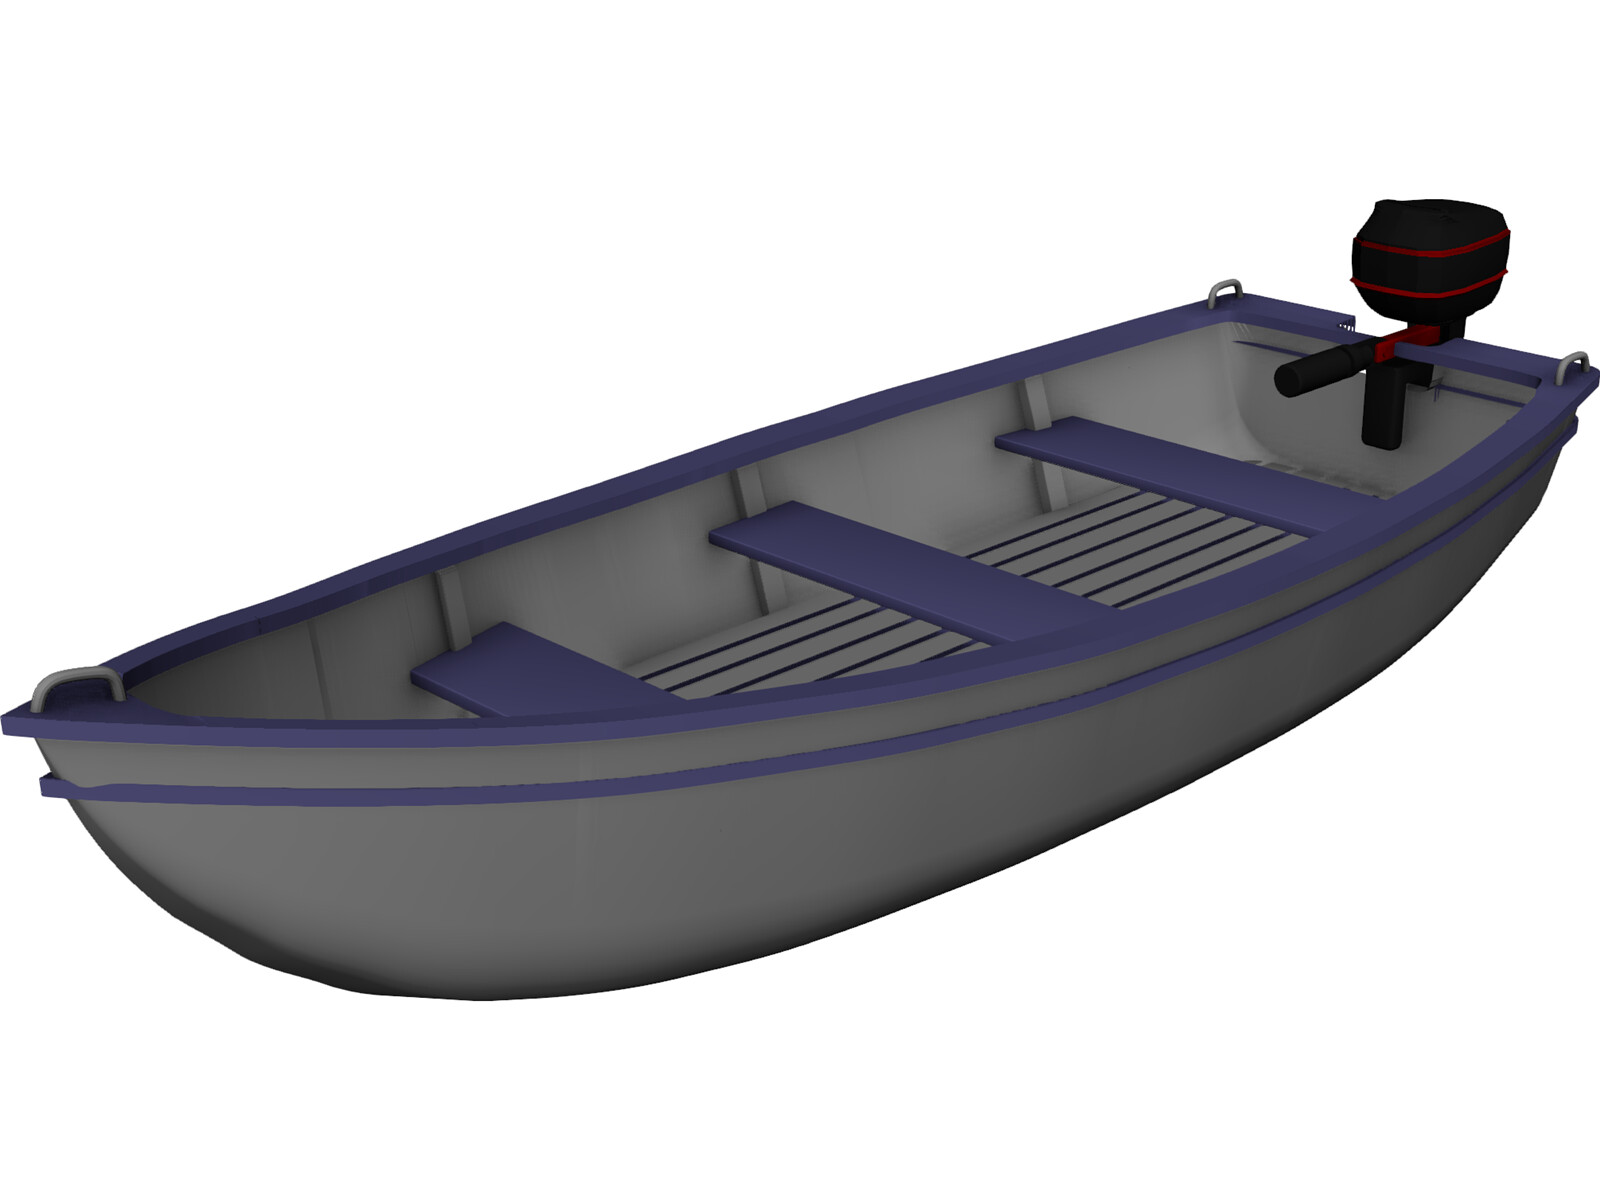 Boat with Outdoor Motor